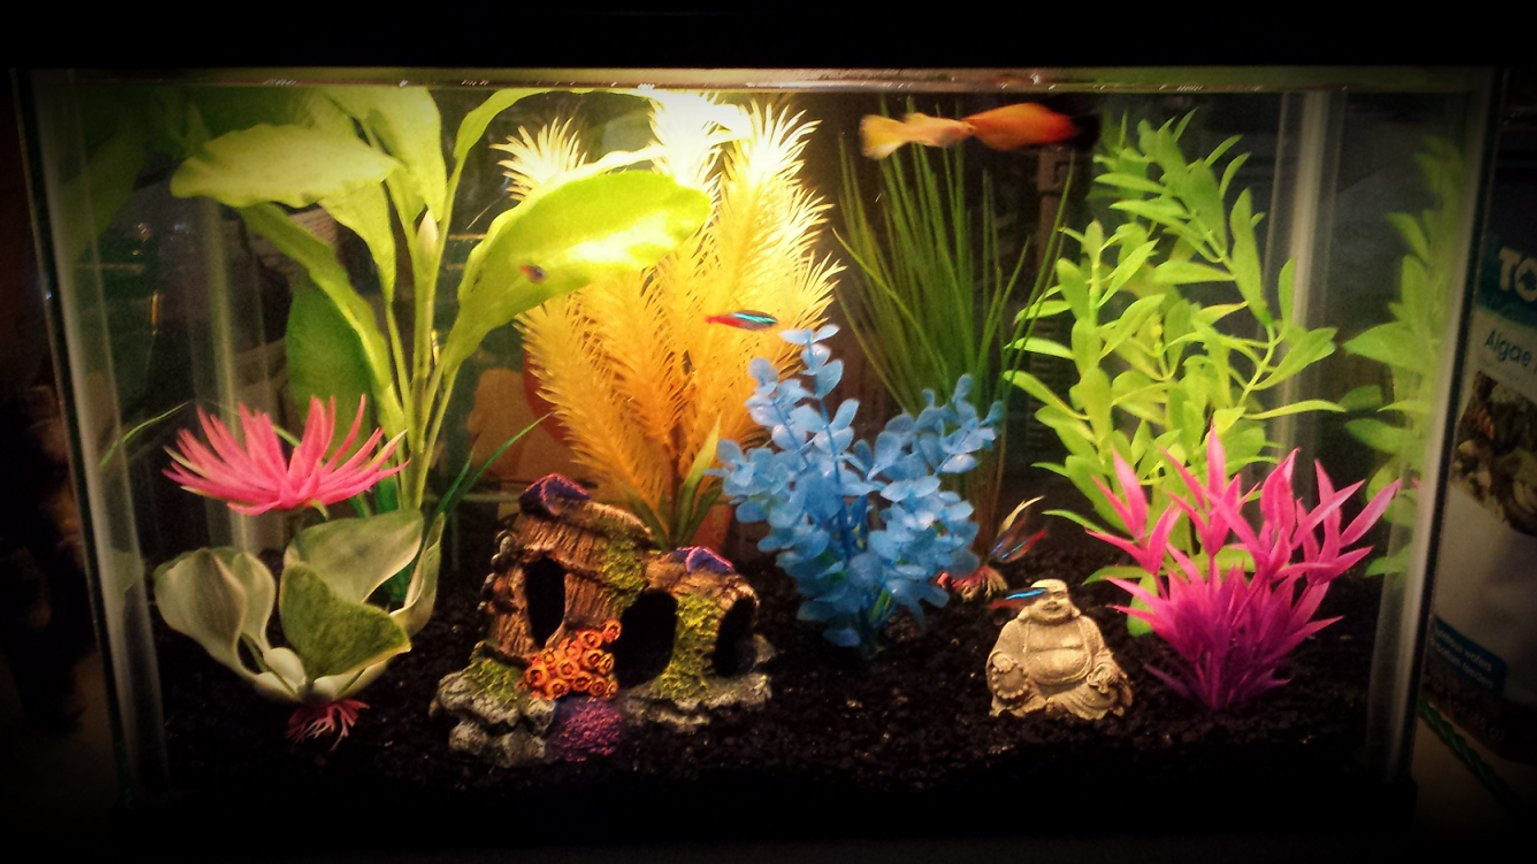 5 gallons freshwater fish tank (mostly fish and non-living decorations)